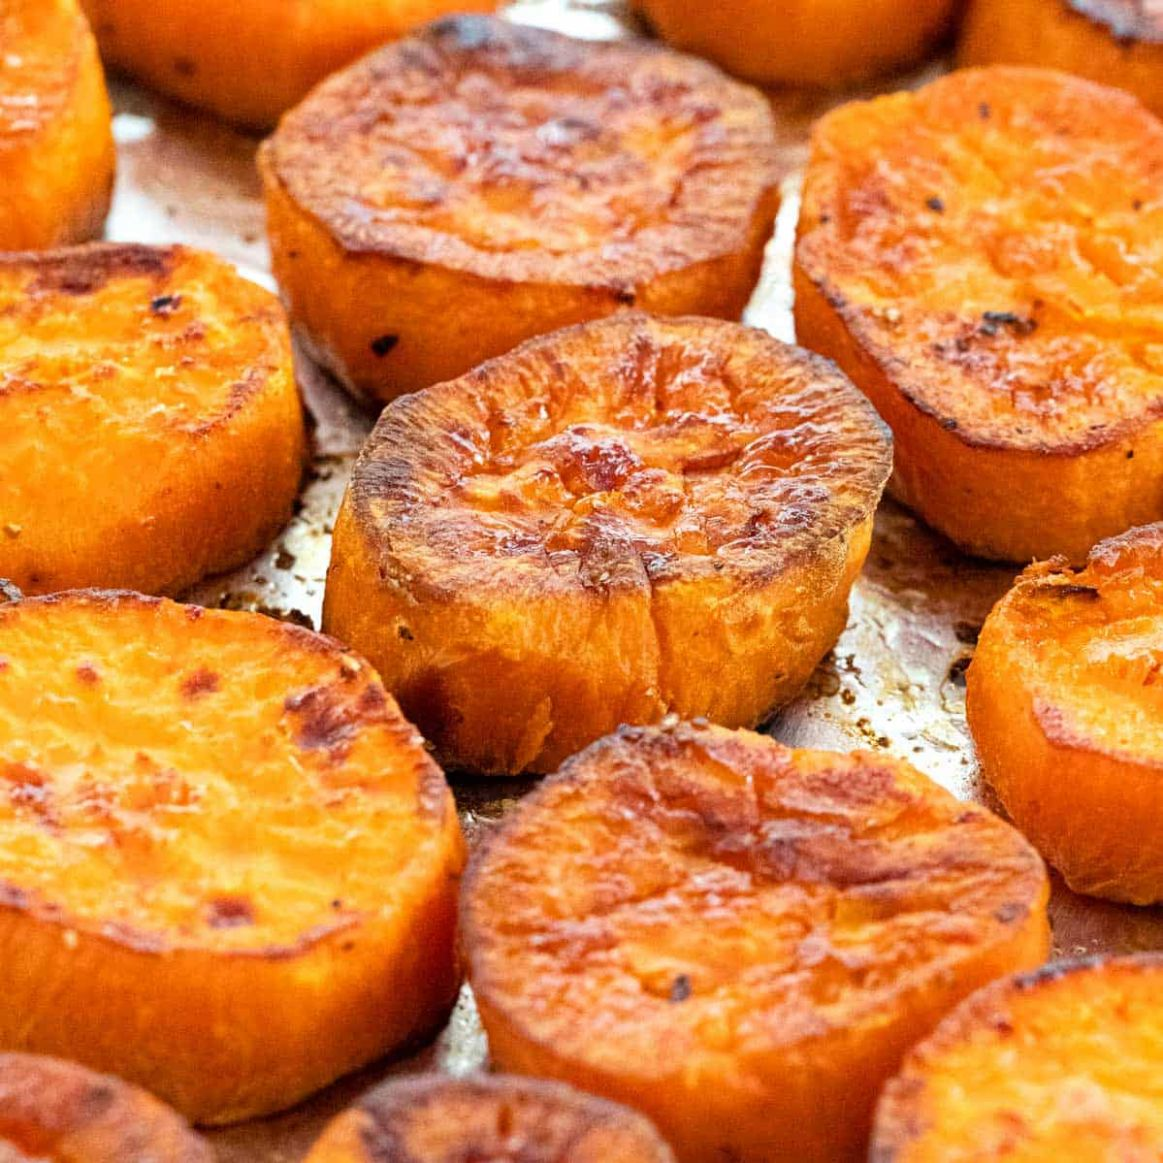 Oven Roasted Sweet Potatoes - Simple Yam Recipes Baked